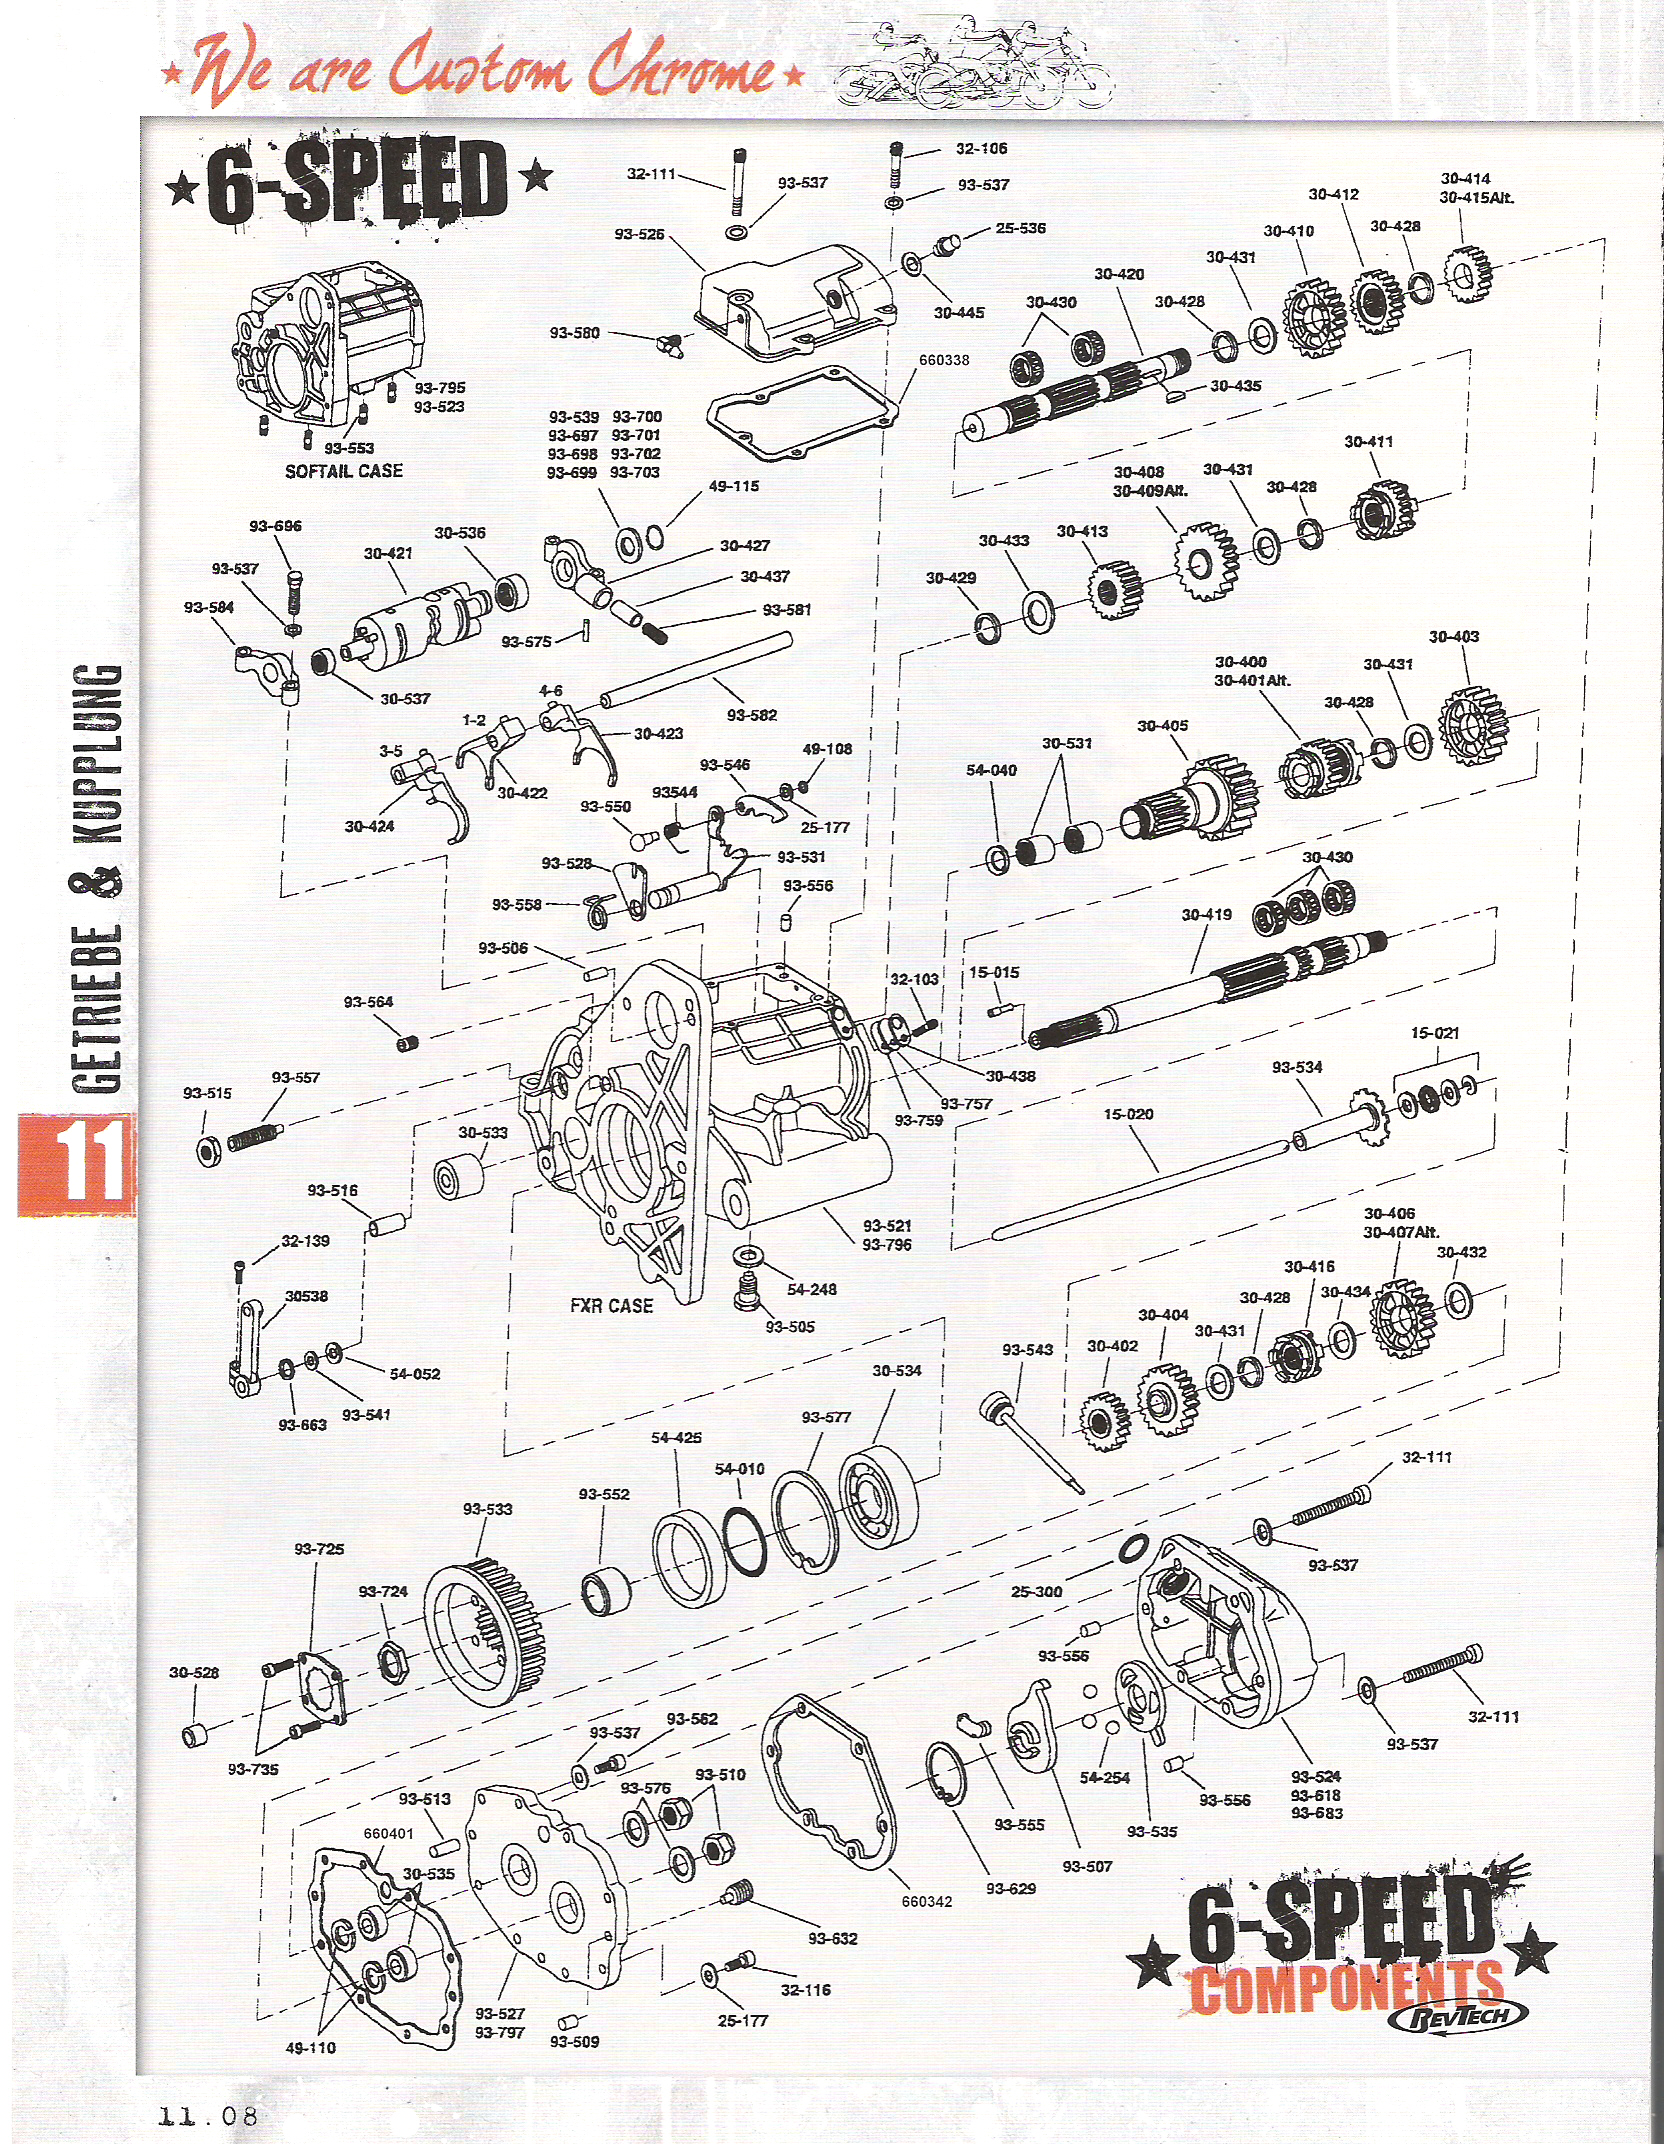 Harley Bike Diagram on electric chopper wiring diagram